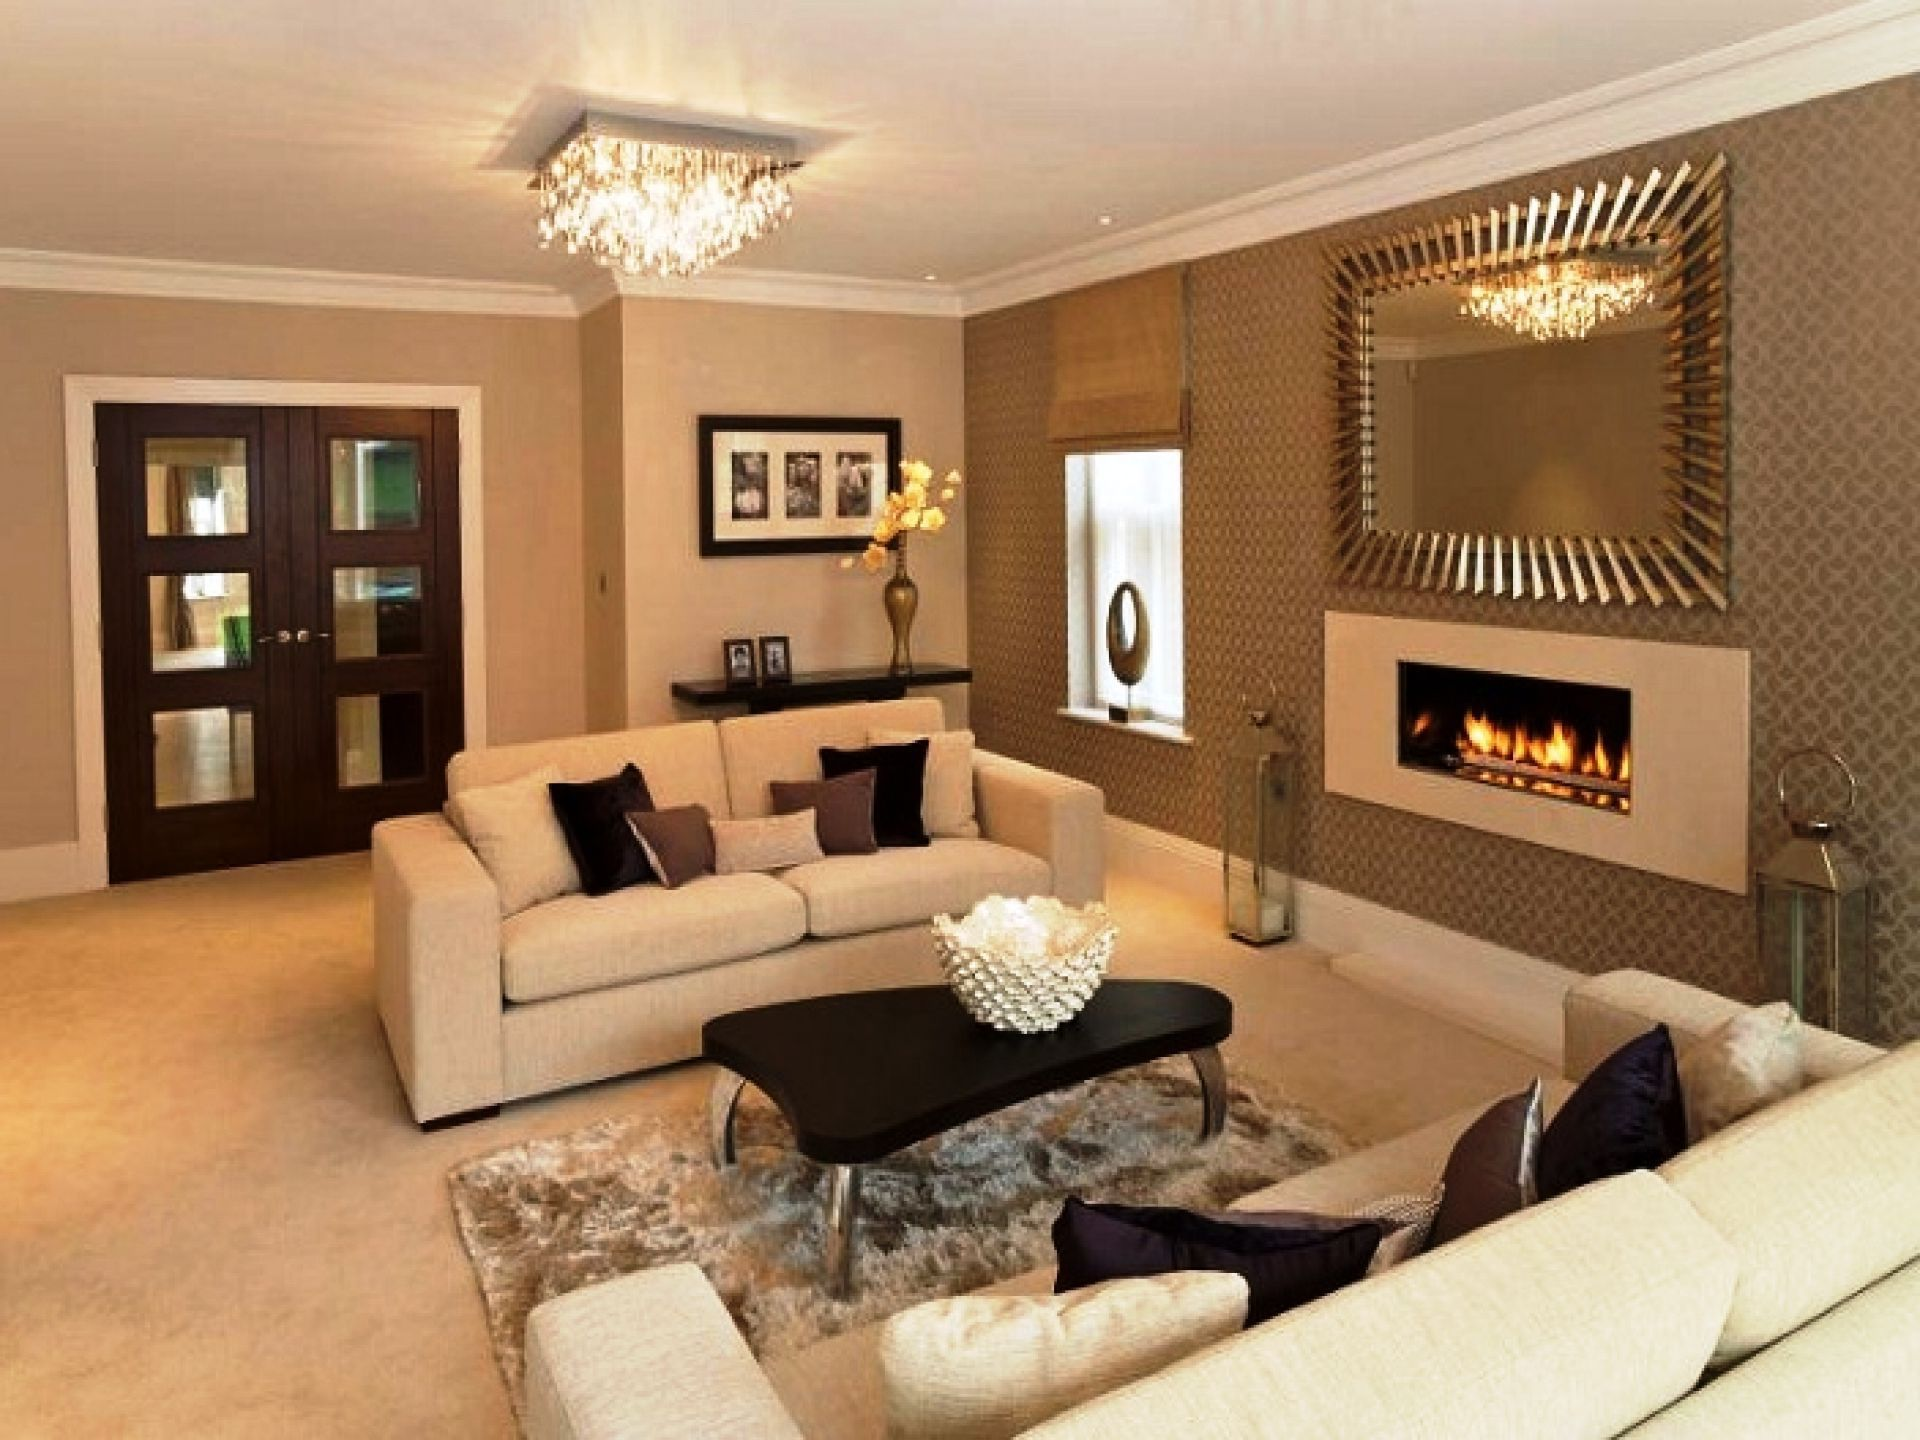 Ordinaire Paint Colors For Living Room Walls With Dark Furniture   Best Master  Furniture Check More At ...